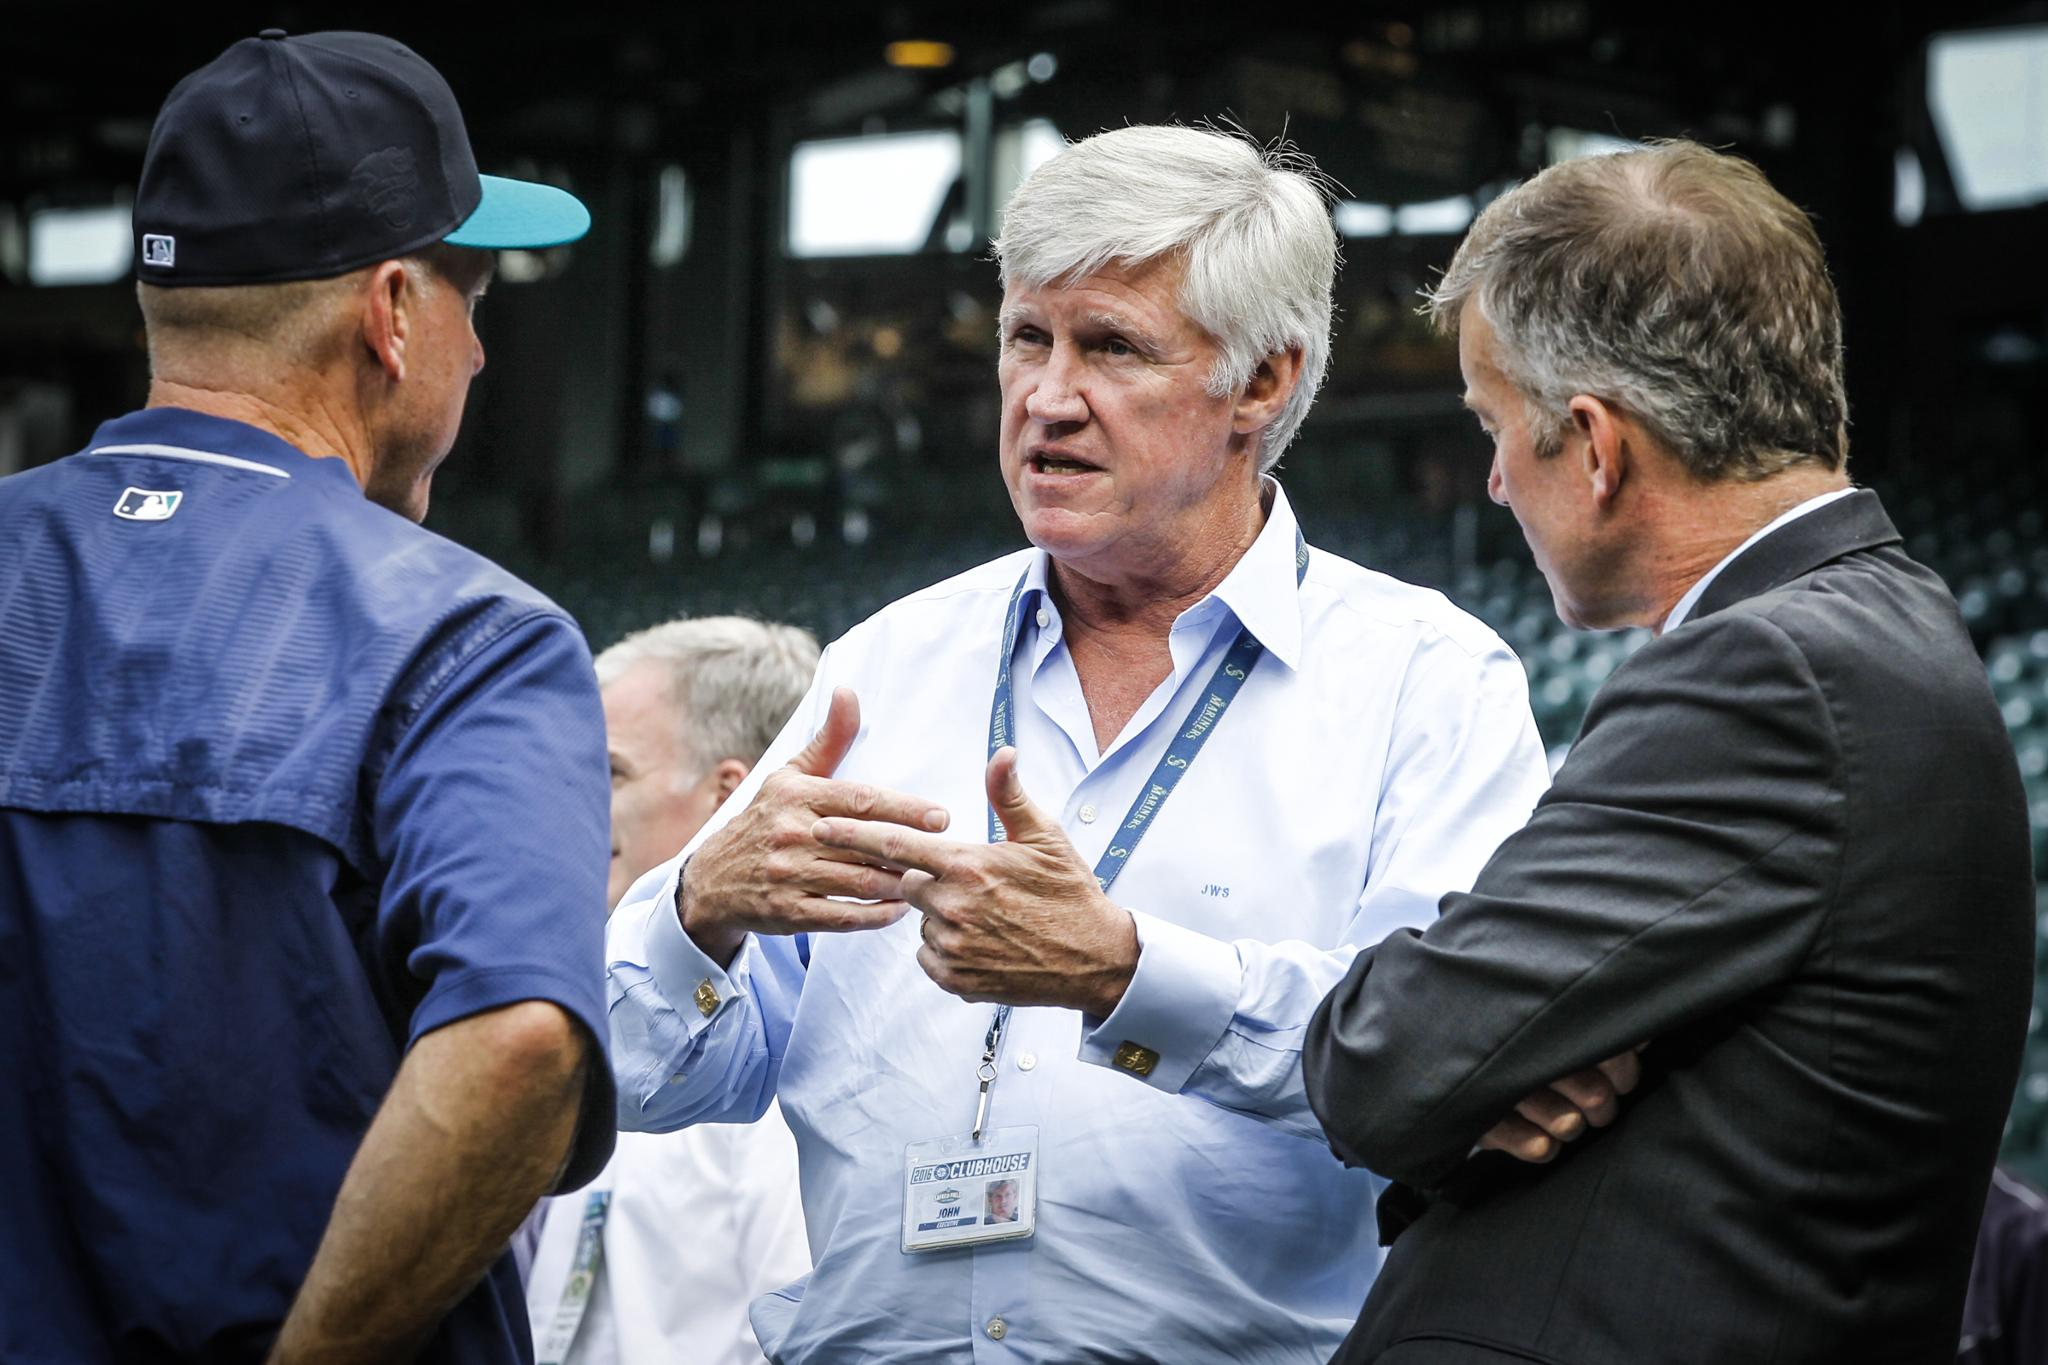 Mariners CEO Stanton 'all in' on club's vision, committed to return to postseason